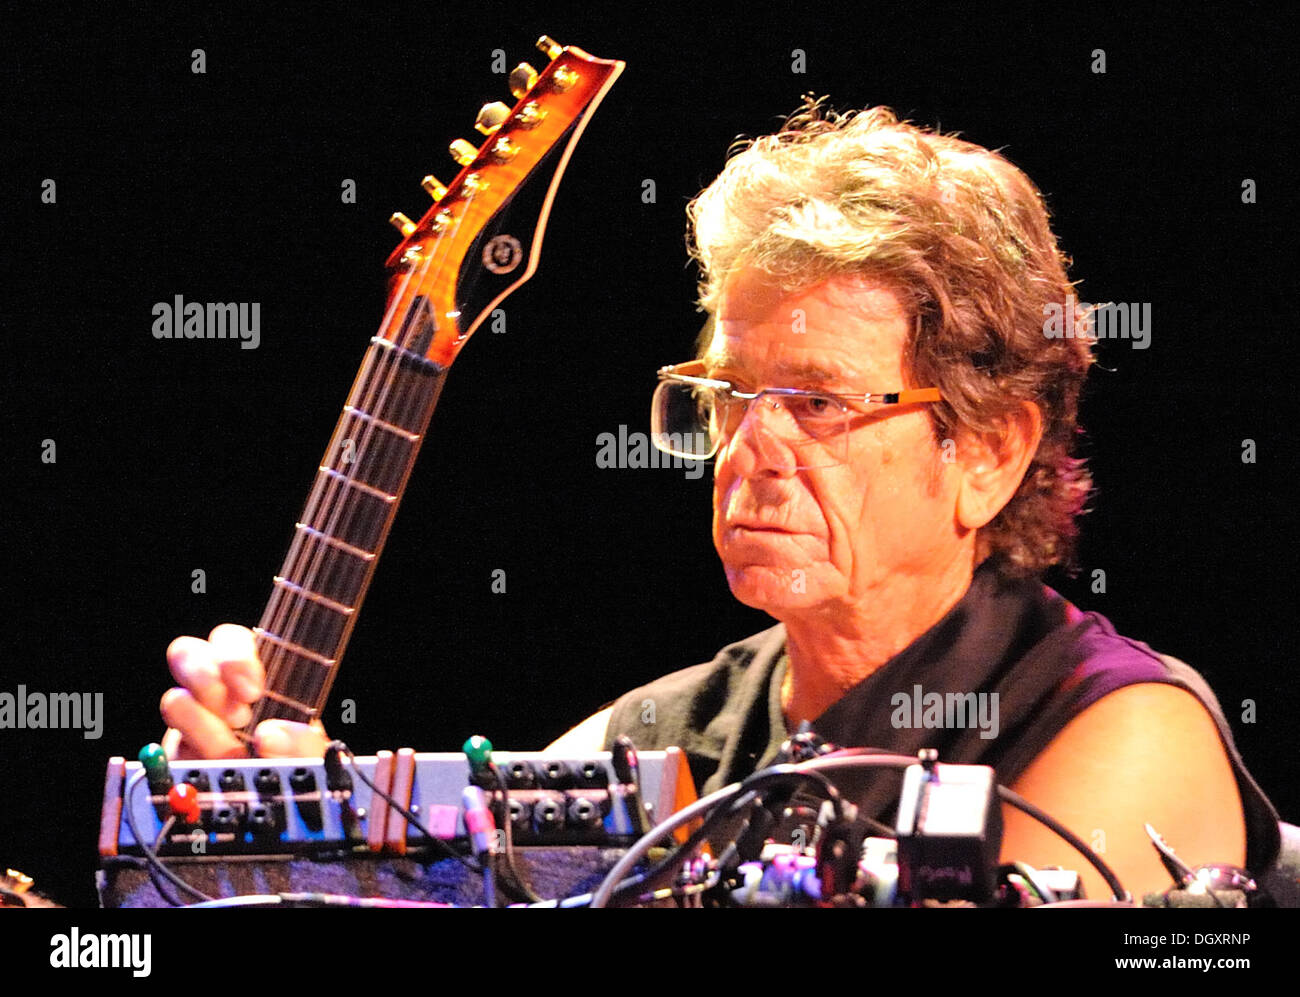 FILE PIX: Frankfurt Main, Germany. 02nd Sep, 2009. US musician Lou Reed performs at Jahrhunderthalle in Frankfurt Main, Germany, 02 September 2009. The programme consists of several hits of the musician, of instrumentals, duets, extracts from theatre plays and poems. Photo: Uwe Anspach/dpa/Alamy Live News - Stock Image